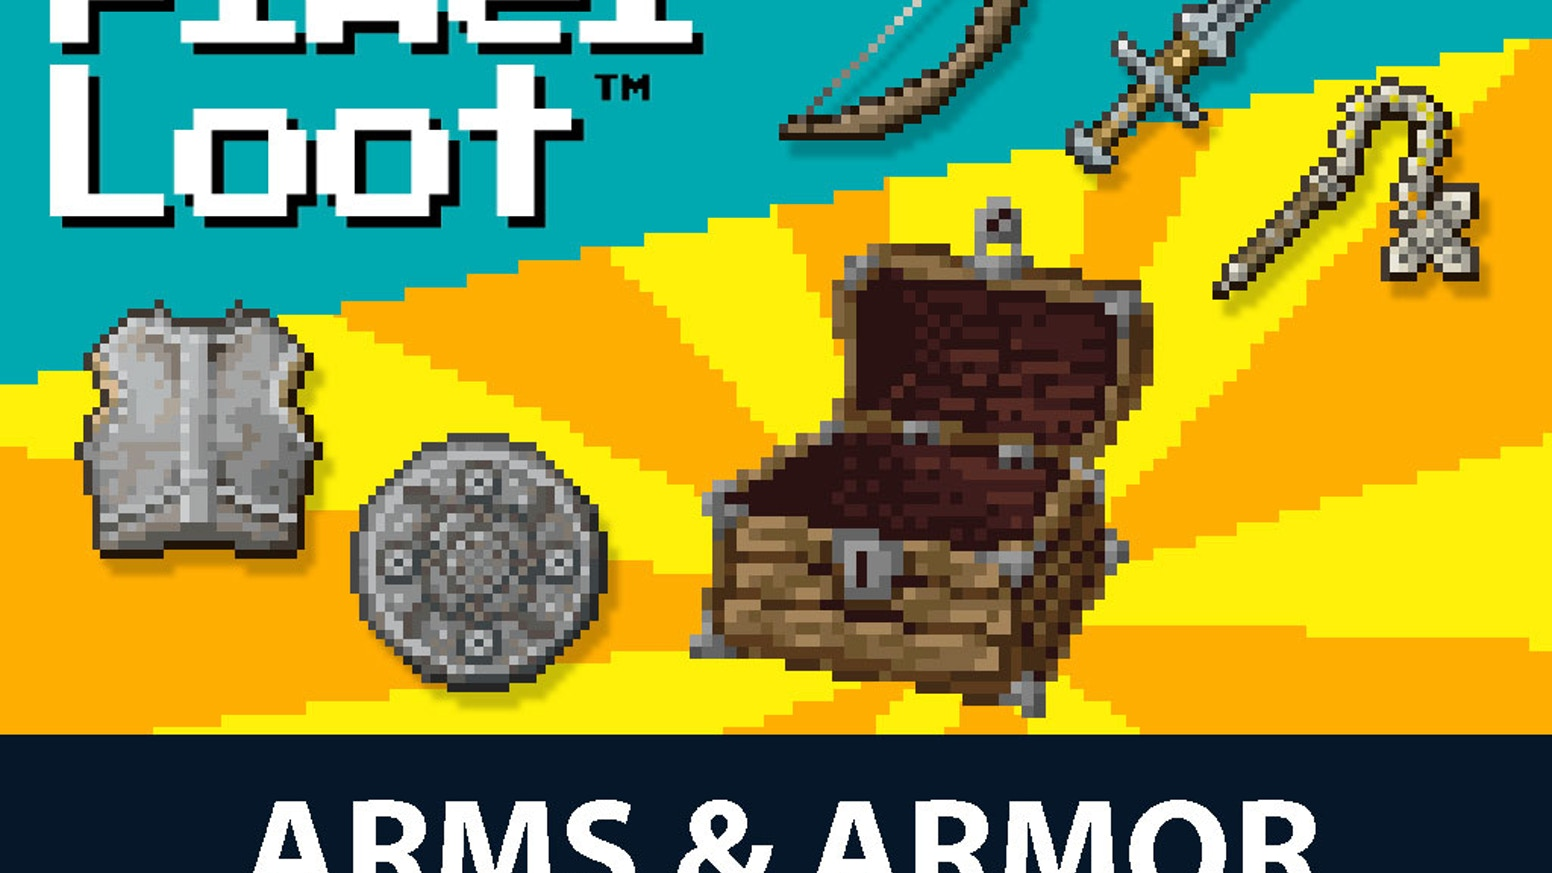 System-generic treasure cards for your favorite fantasy role-playing game, with a retro 16-bit pixel art theme. Arms & Armor is available now, so order your copy today!